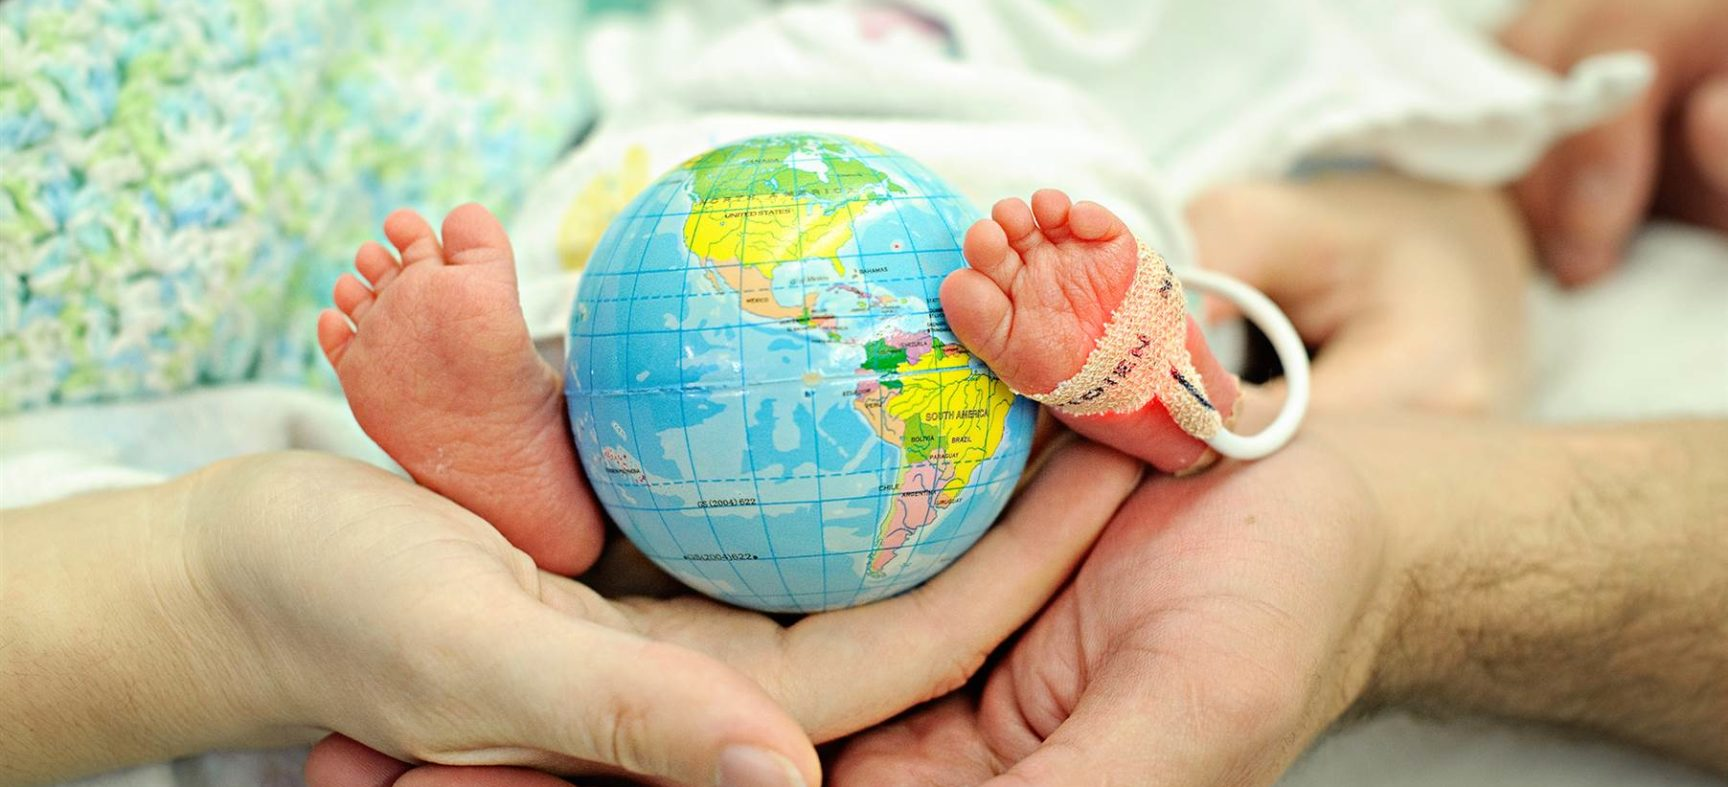 Neonatal Intensive Care - A World Within